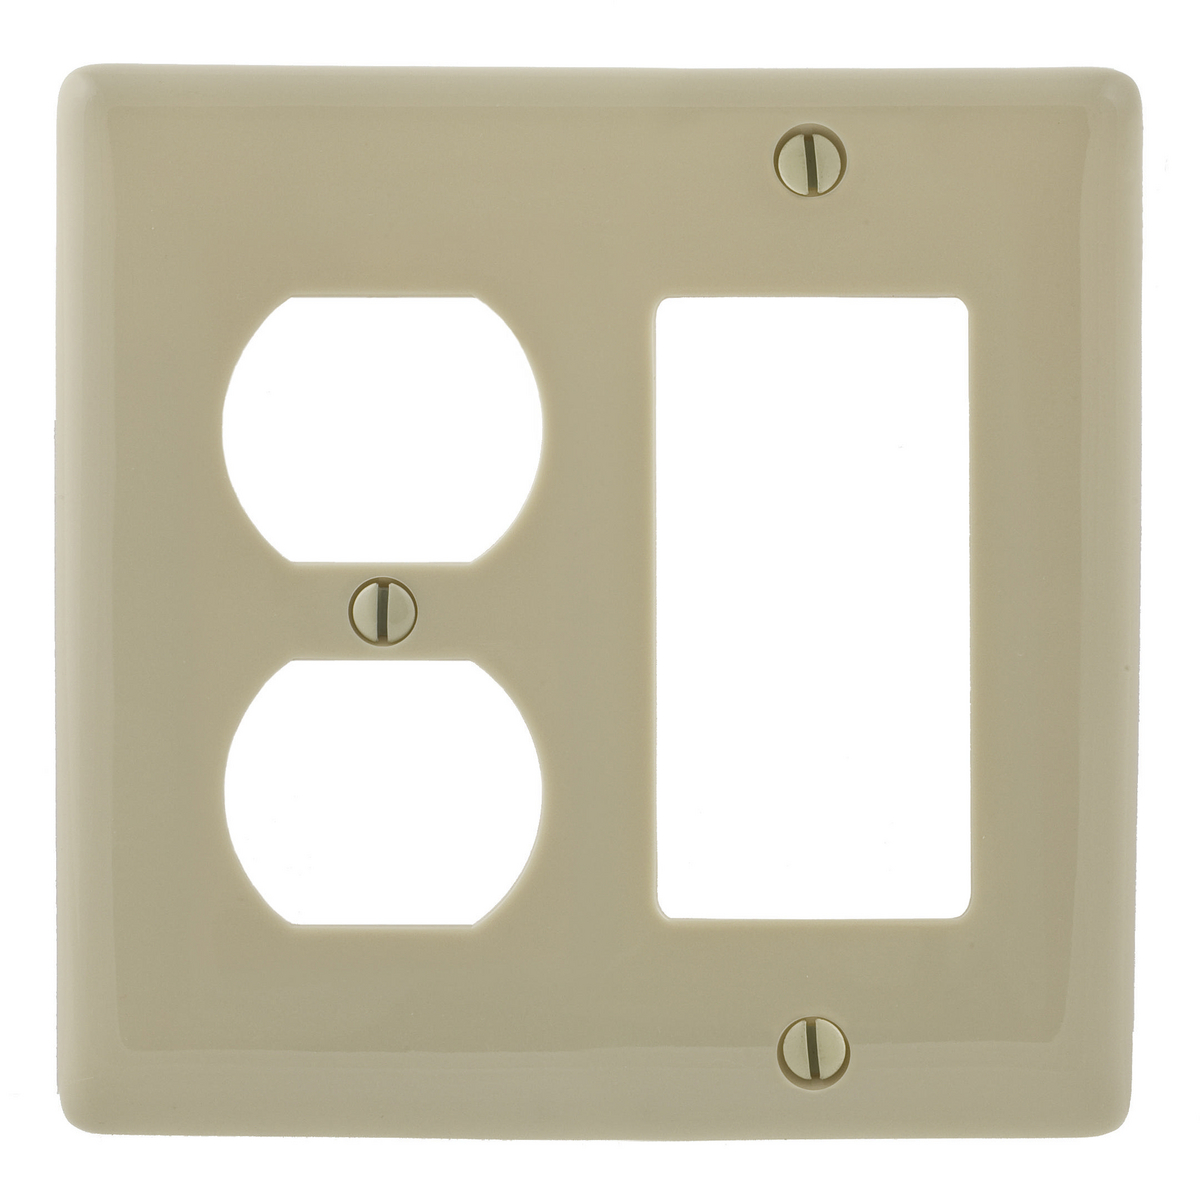 Hubbell NP826I 2-Gang Ivory Nylon Standard 1-Decorator Switch 1-Duplex Receptacle Combination Wallplate